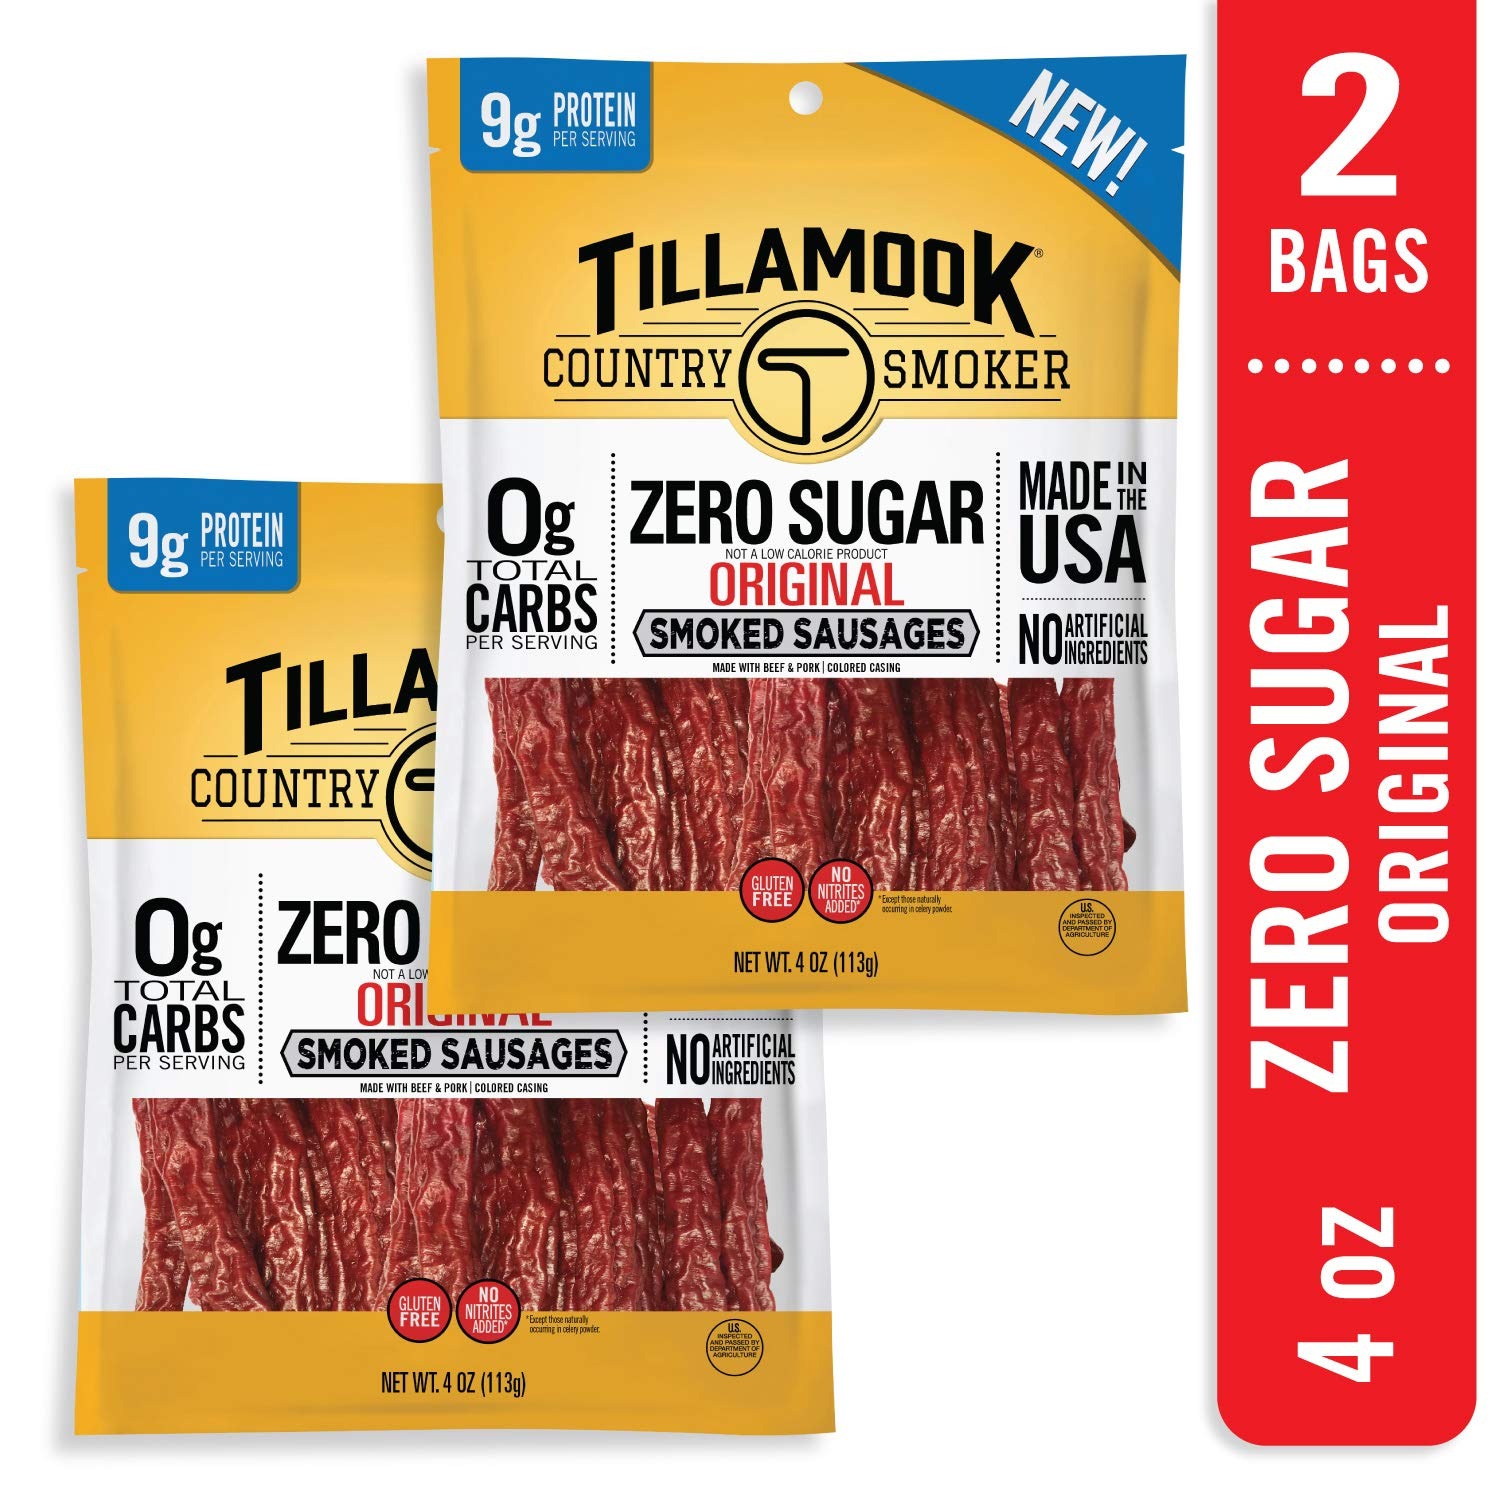 Tillamook Country Smoker Zero Sugar Original Keto Friendly Smoked Sausages 2-pack, 8oz